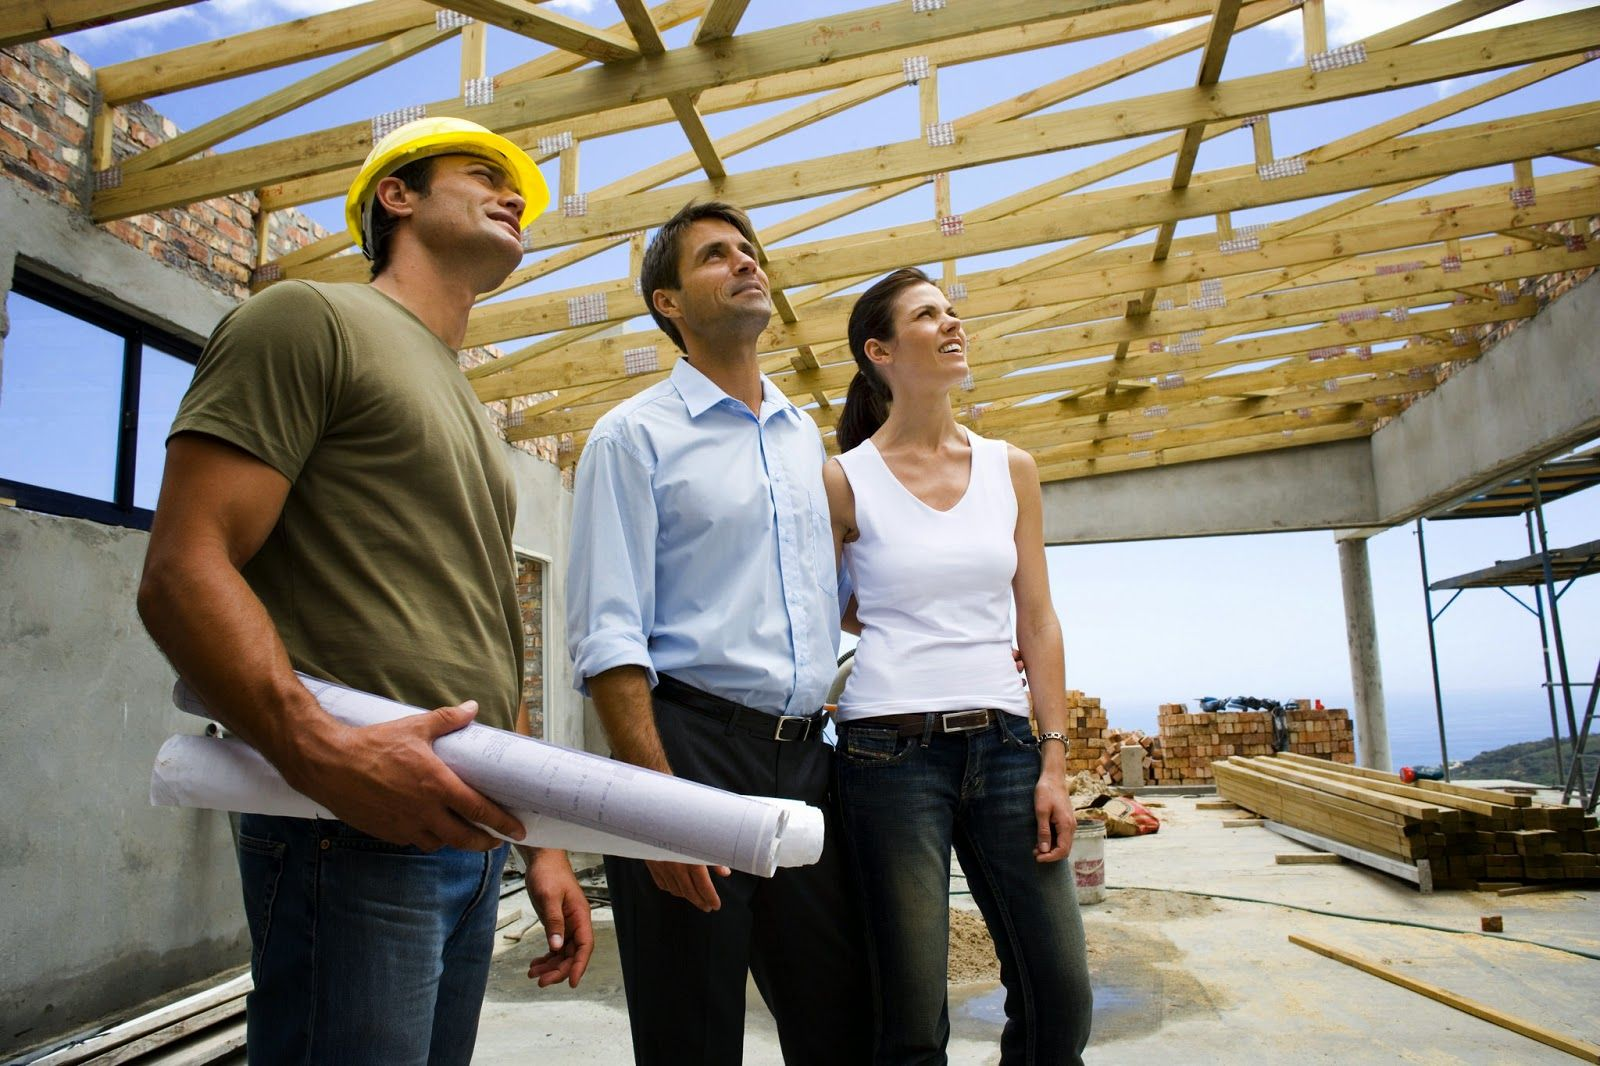 CA Home Contractors Emerges As a Preferred Home Improvement Service Provider: CA Home Contractors Emerges As a Preferred Home Im...